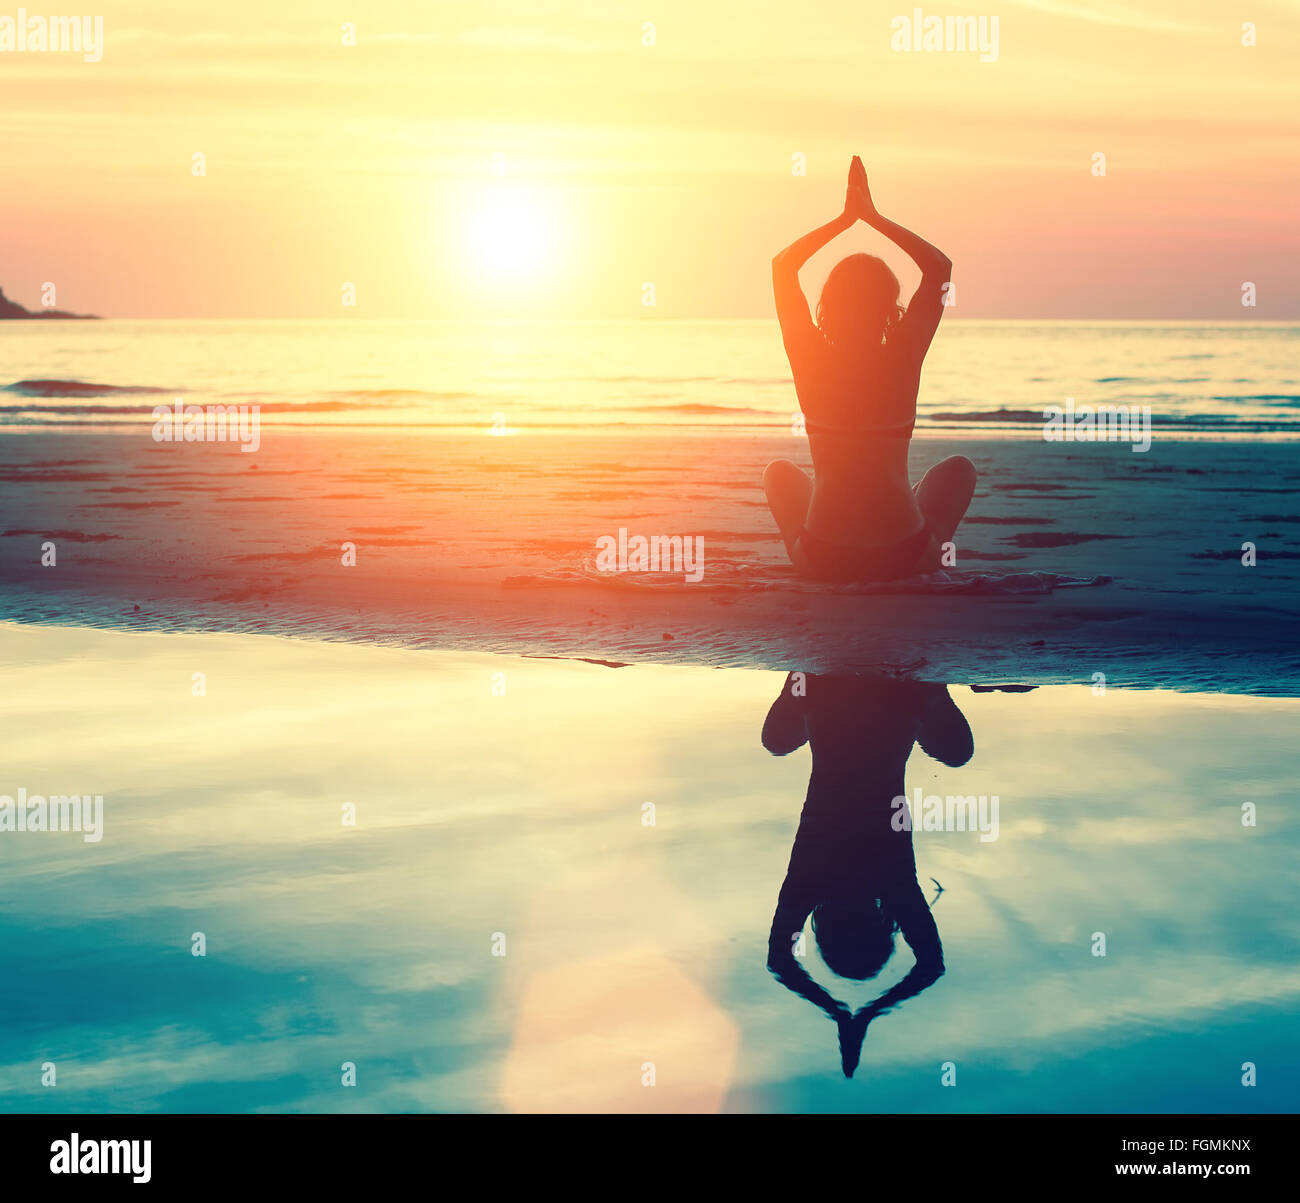 Meditation, serenity and yoga practicing at sunset. - Stock Image